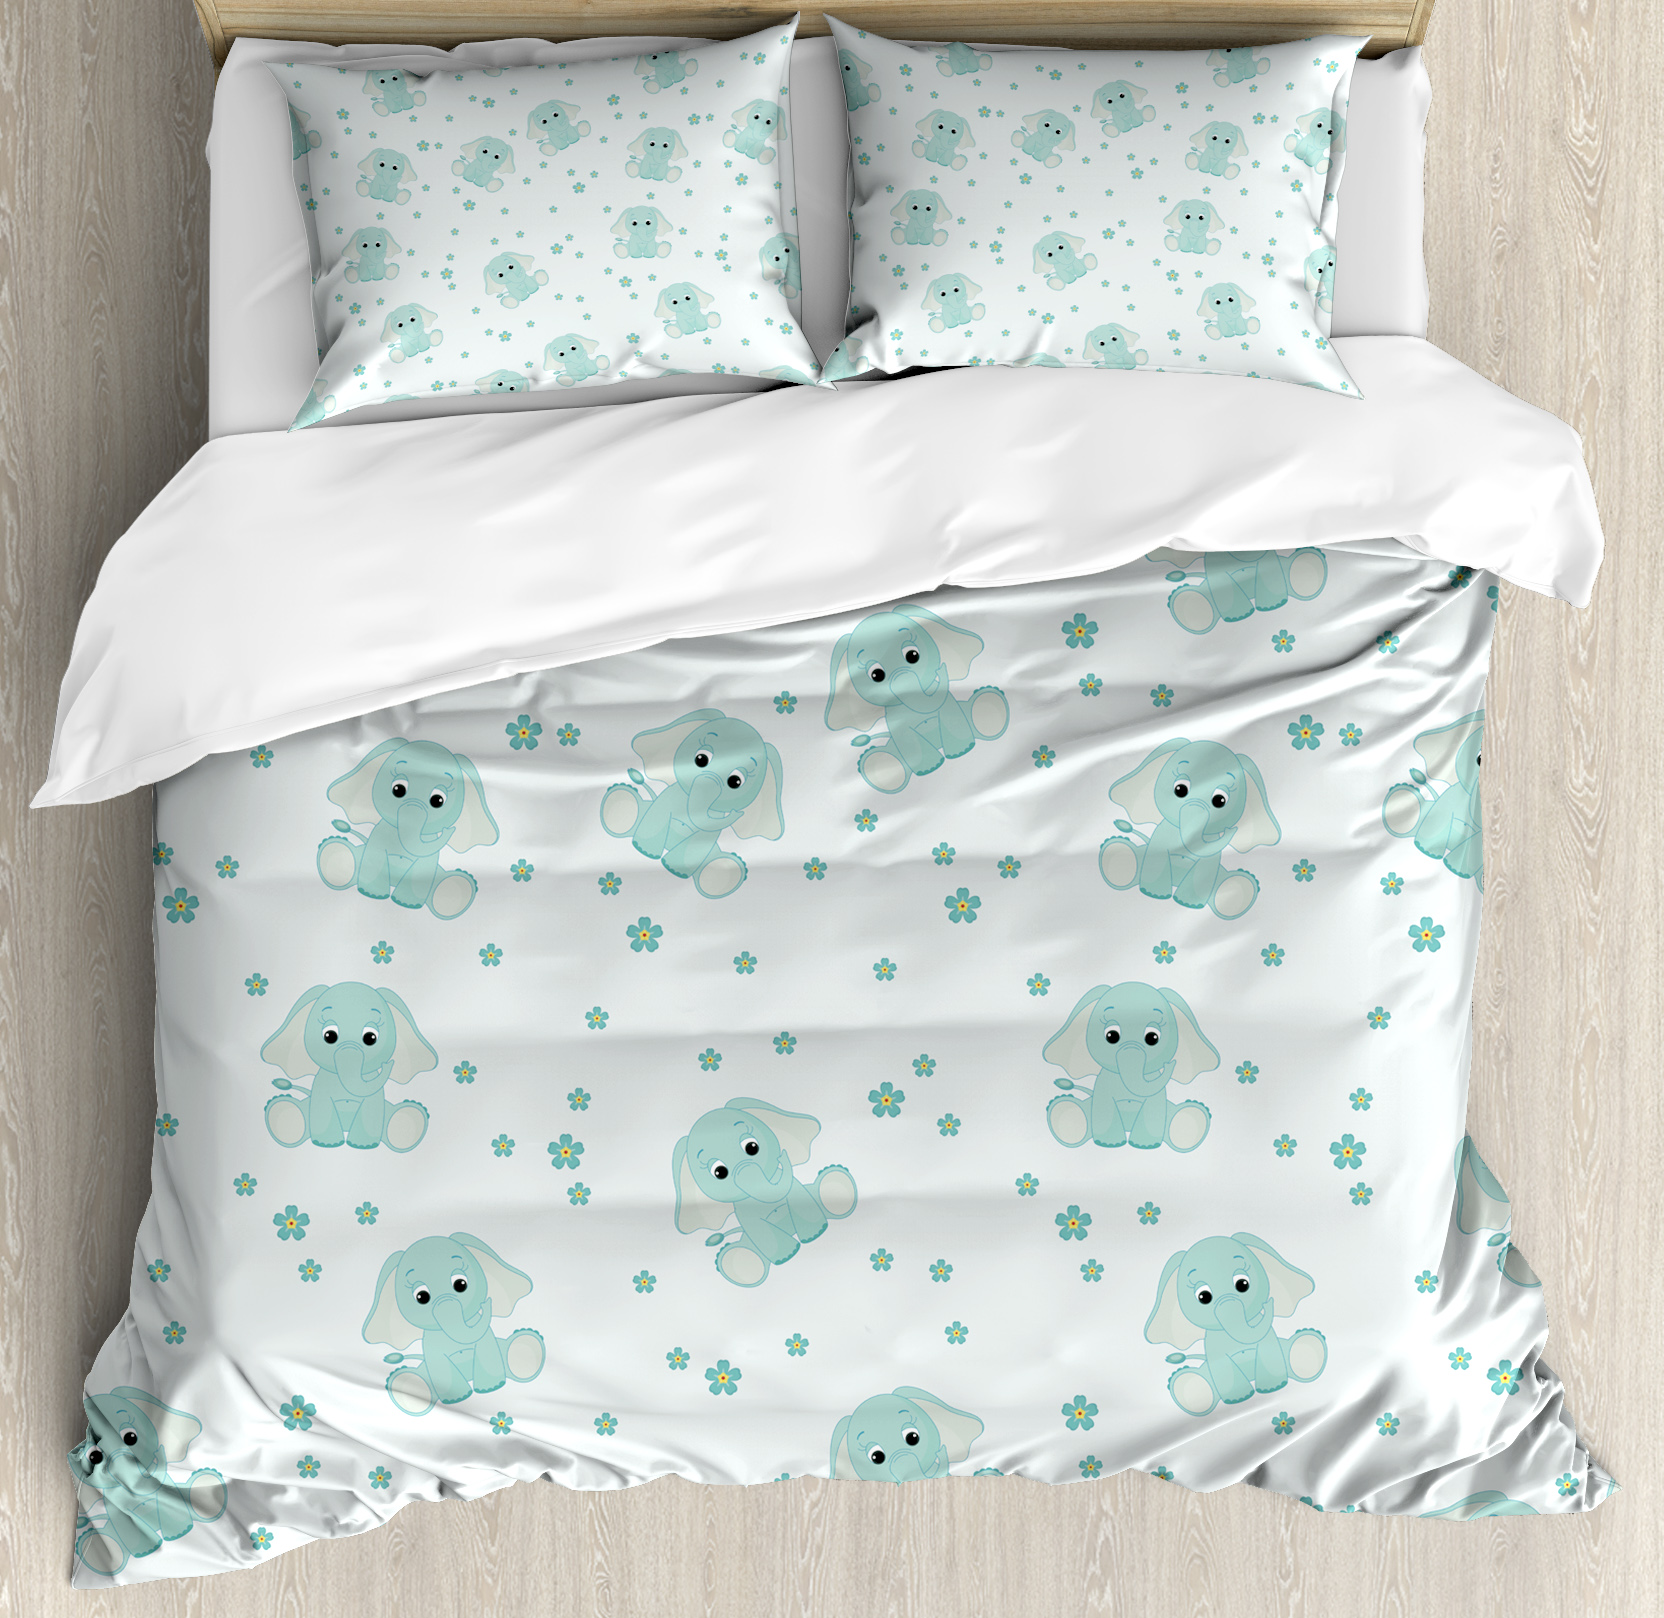 Elephant Nursery Decor King Size Duvet Cover Set, Young Elephants in Spring Meadow Daisies... by Kozmos